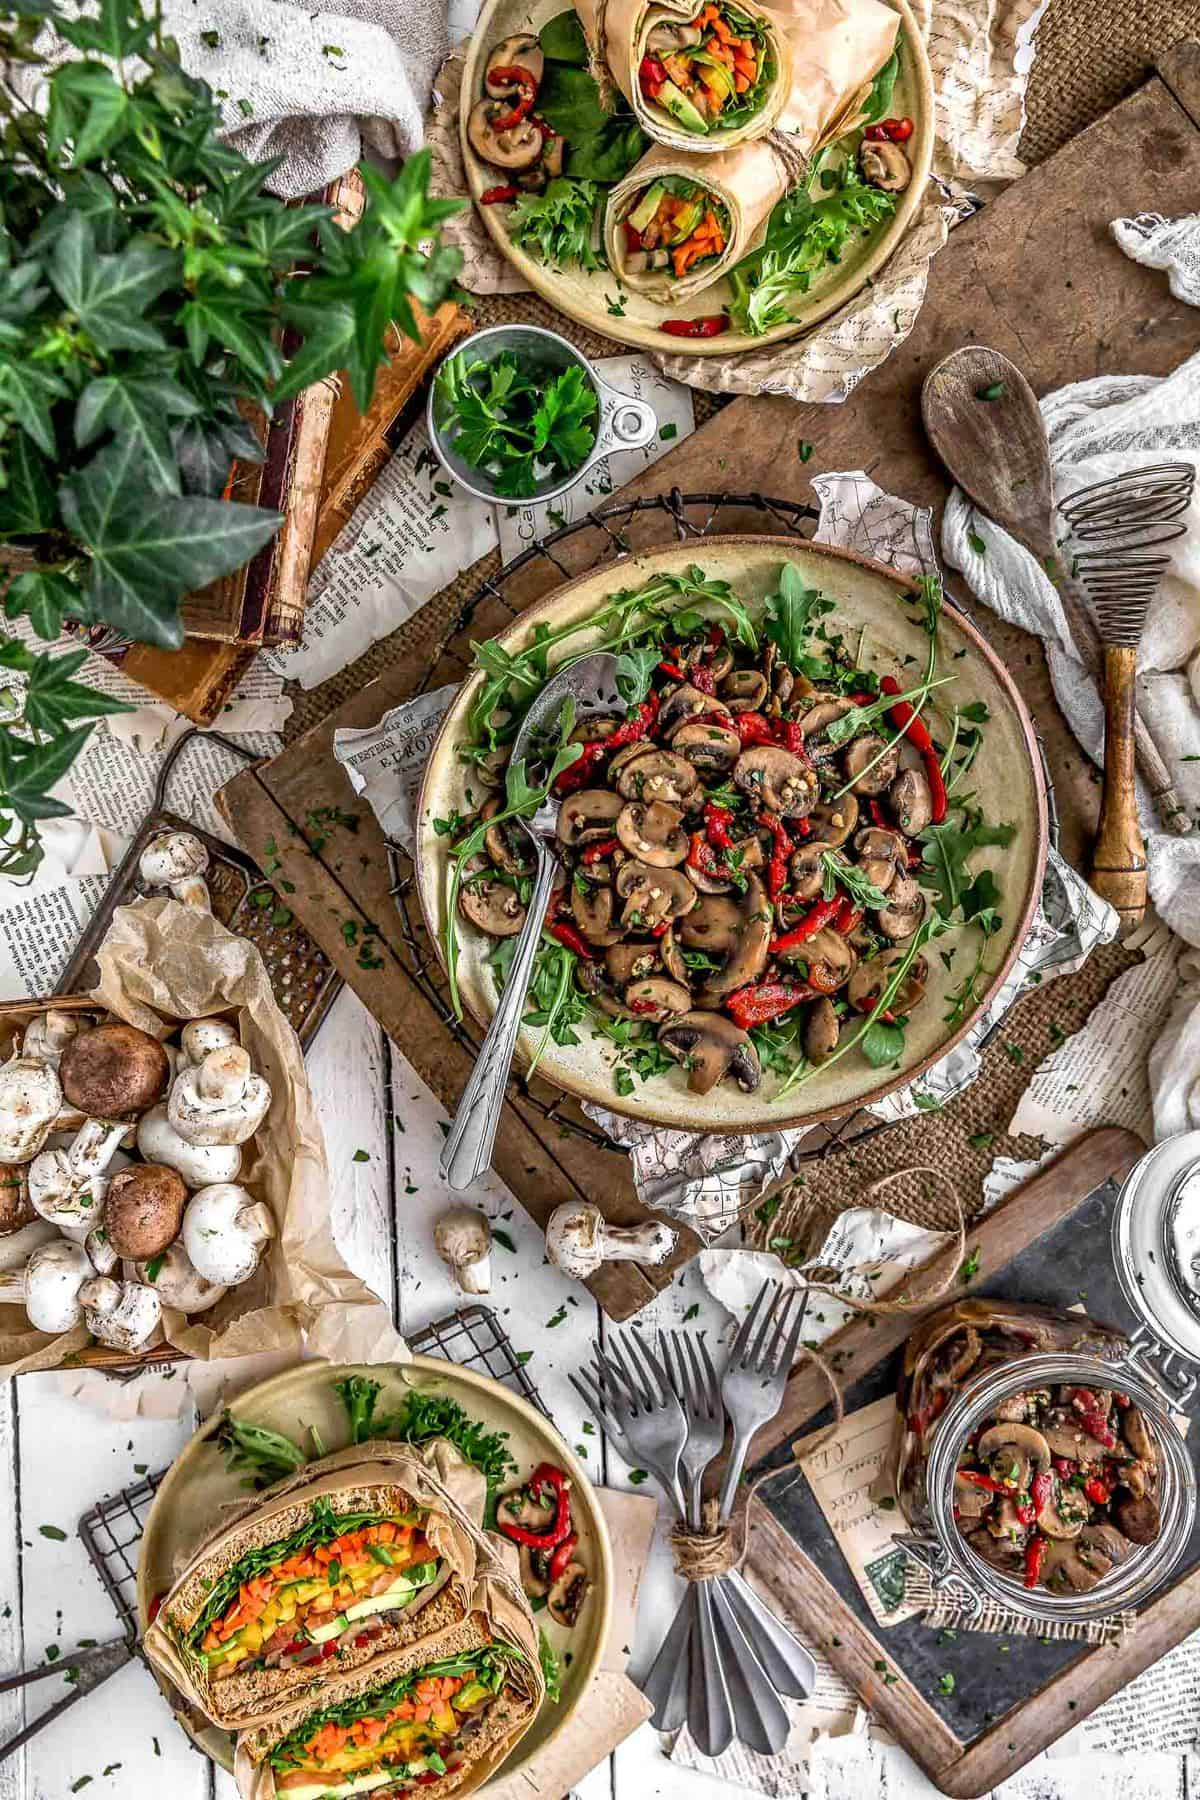 Tablescape of Deli-Style Marinated Mushroom Salad